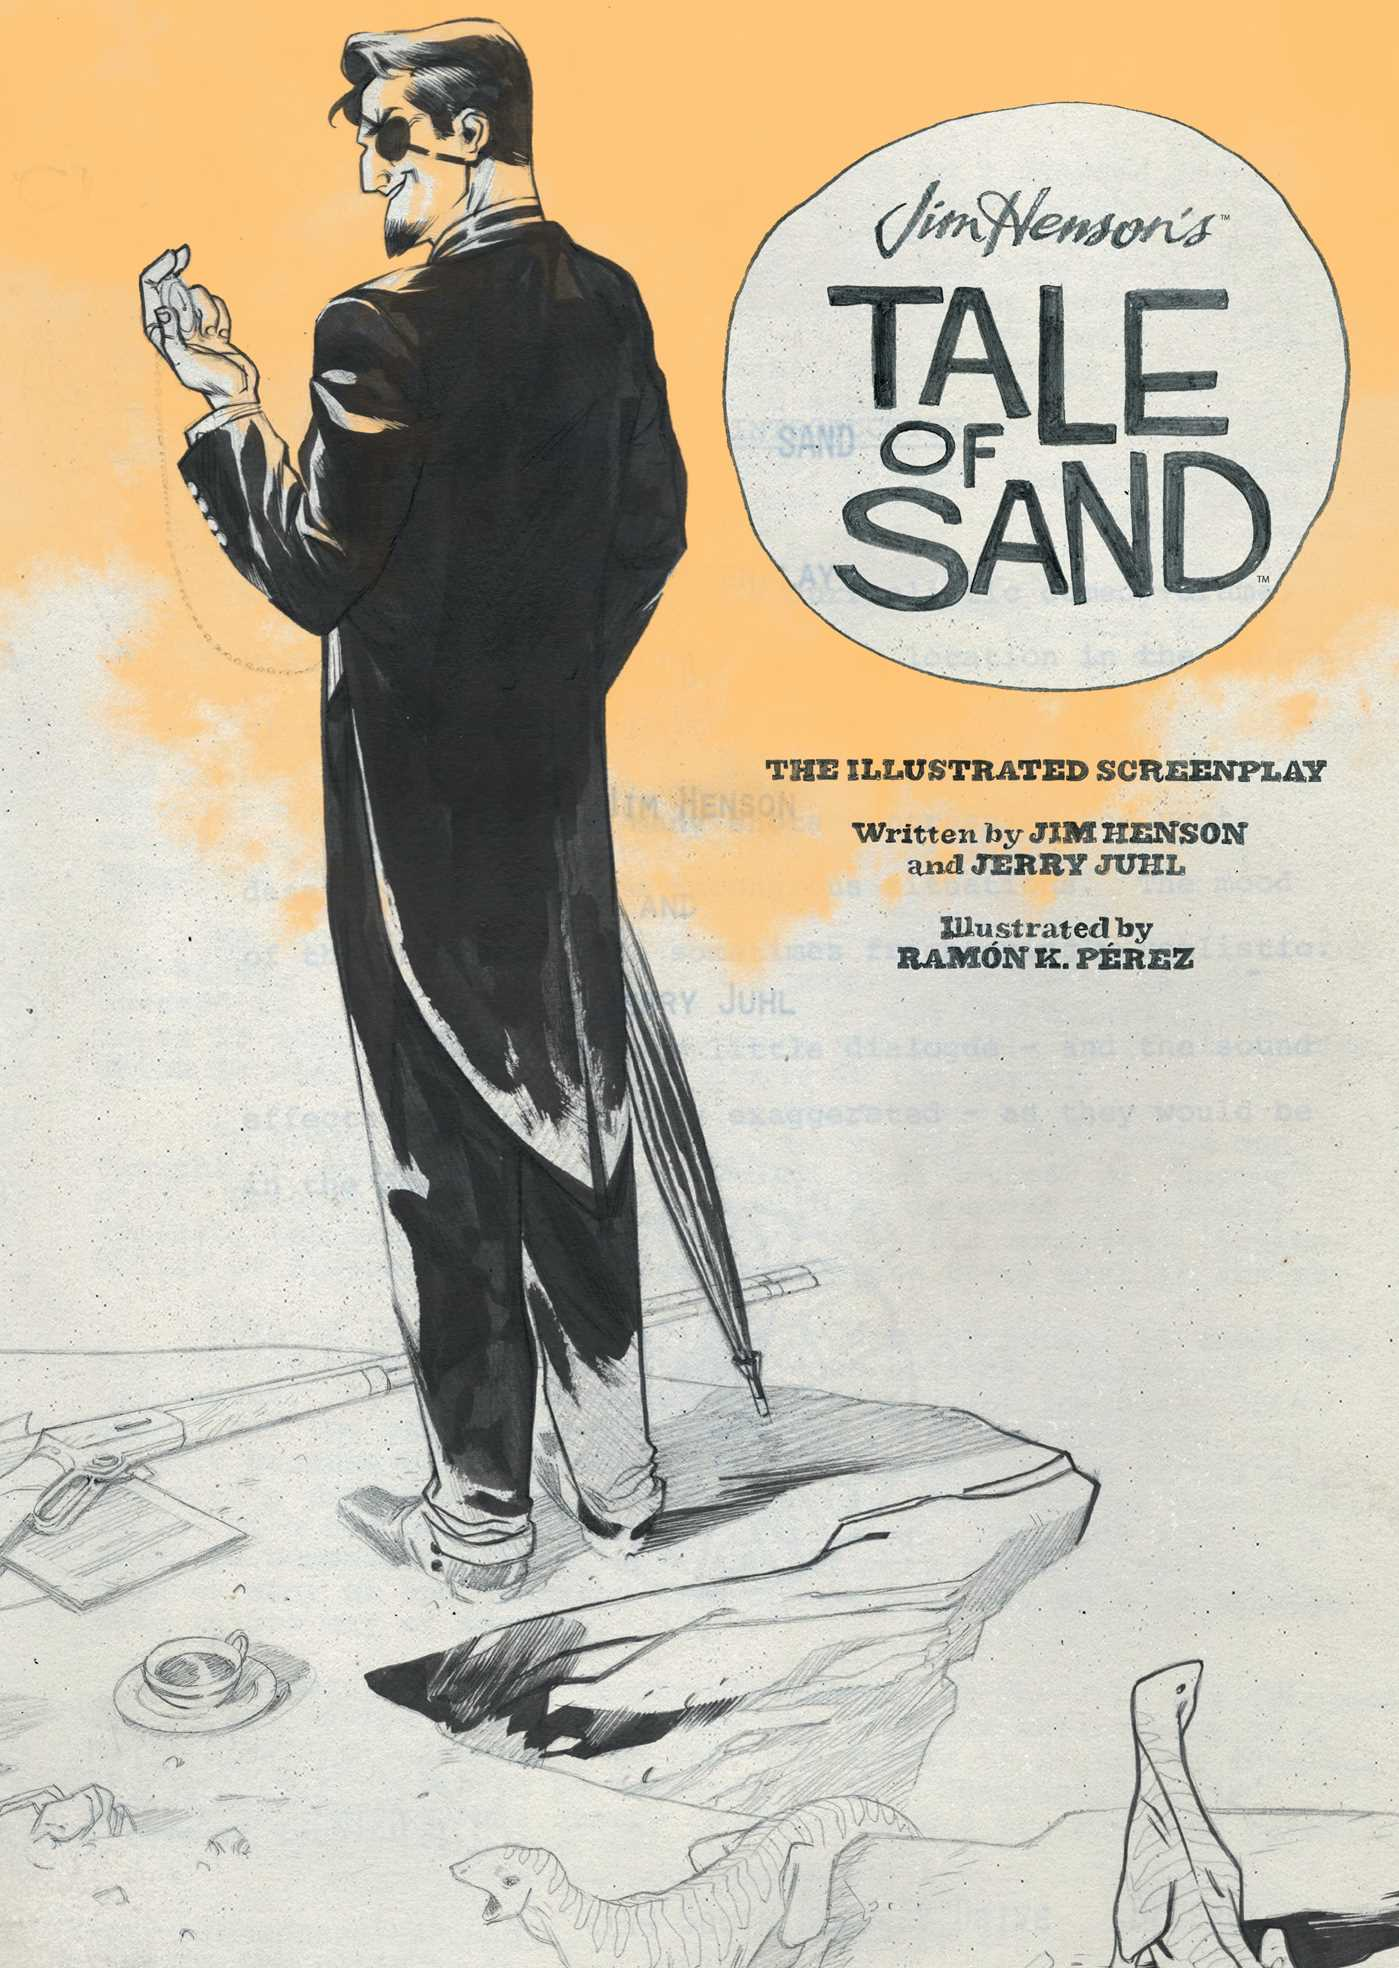 Jim-hensons-tale-of-sand-screenplay-9781608864409_hr